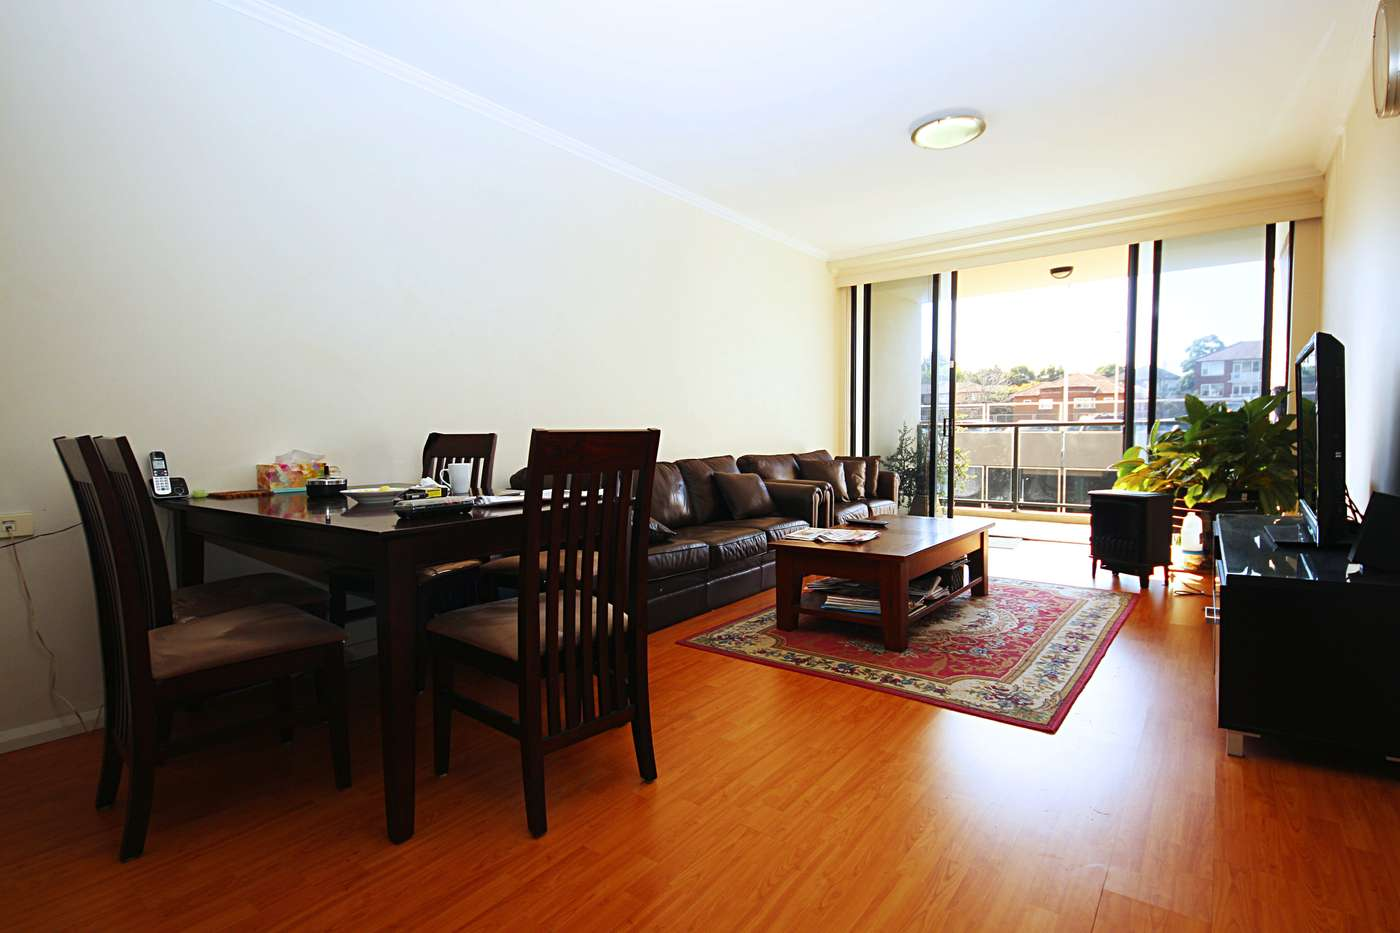 Main view of Homely apartment listing, 120/1 Brown Street, Ashfield, NSW 2131